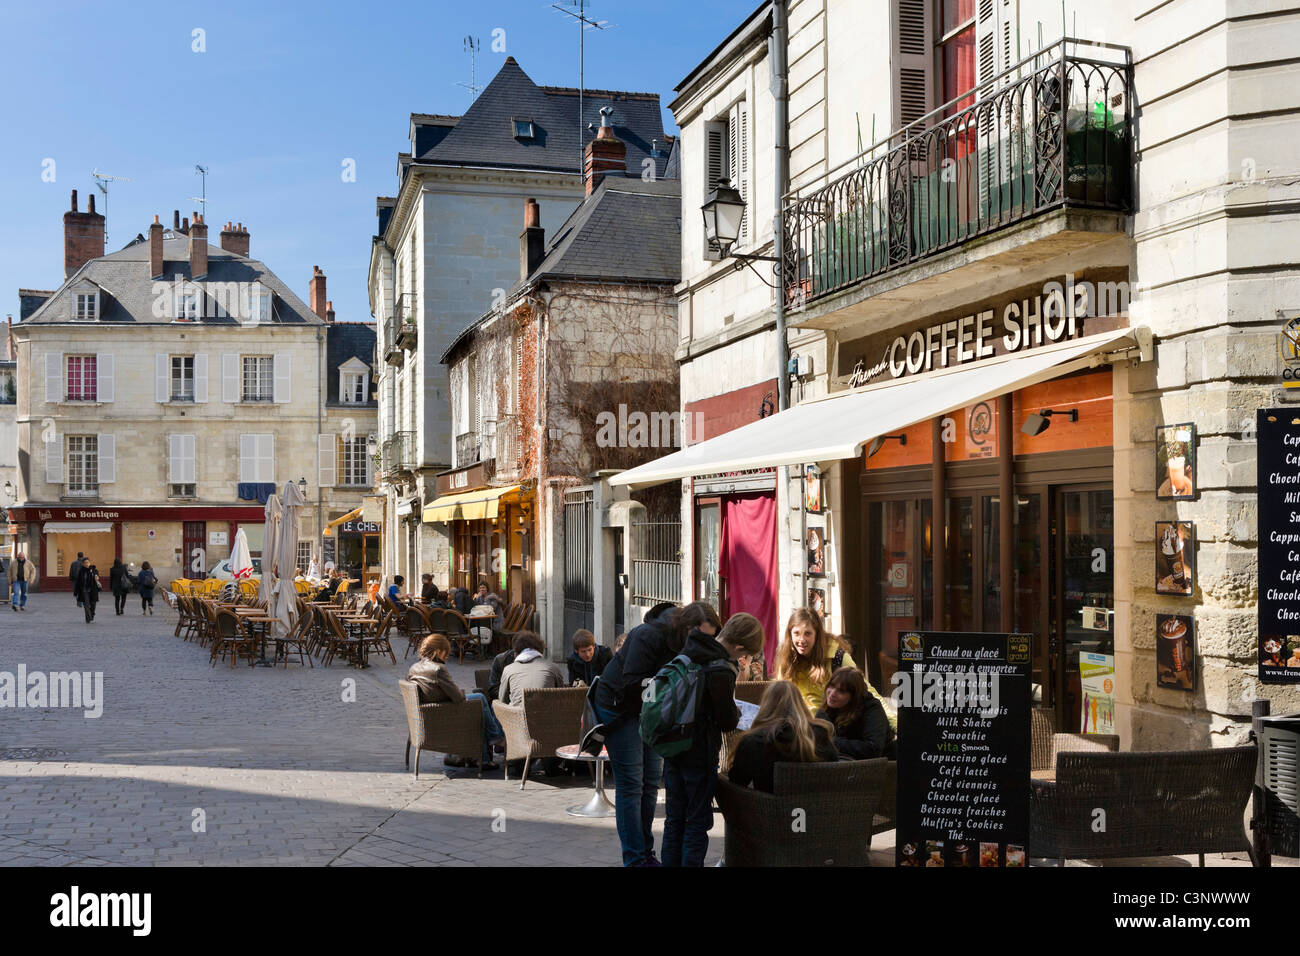 Cafes on Rue du Commerce in the centre of the city, Tours, Indre et Loire, France - Stock Image